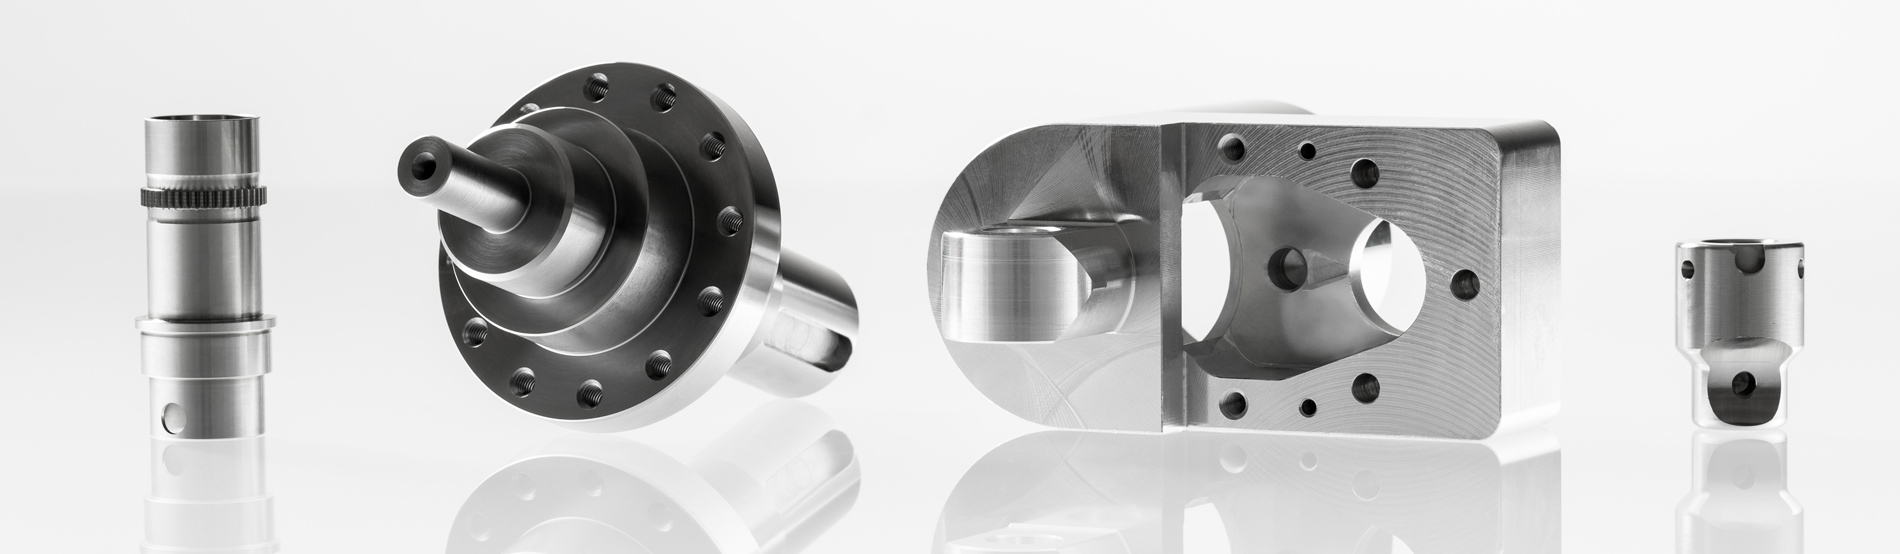 CNC Precision Technology